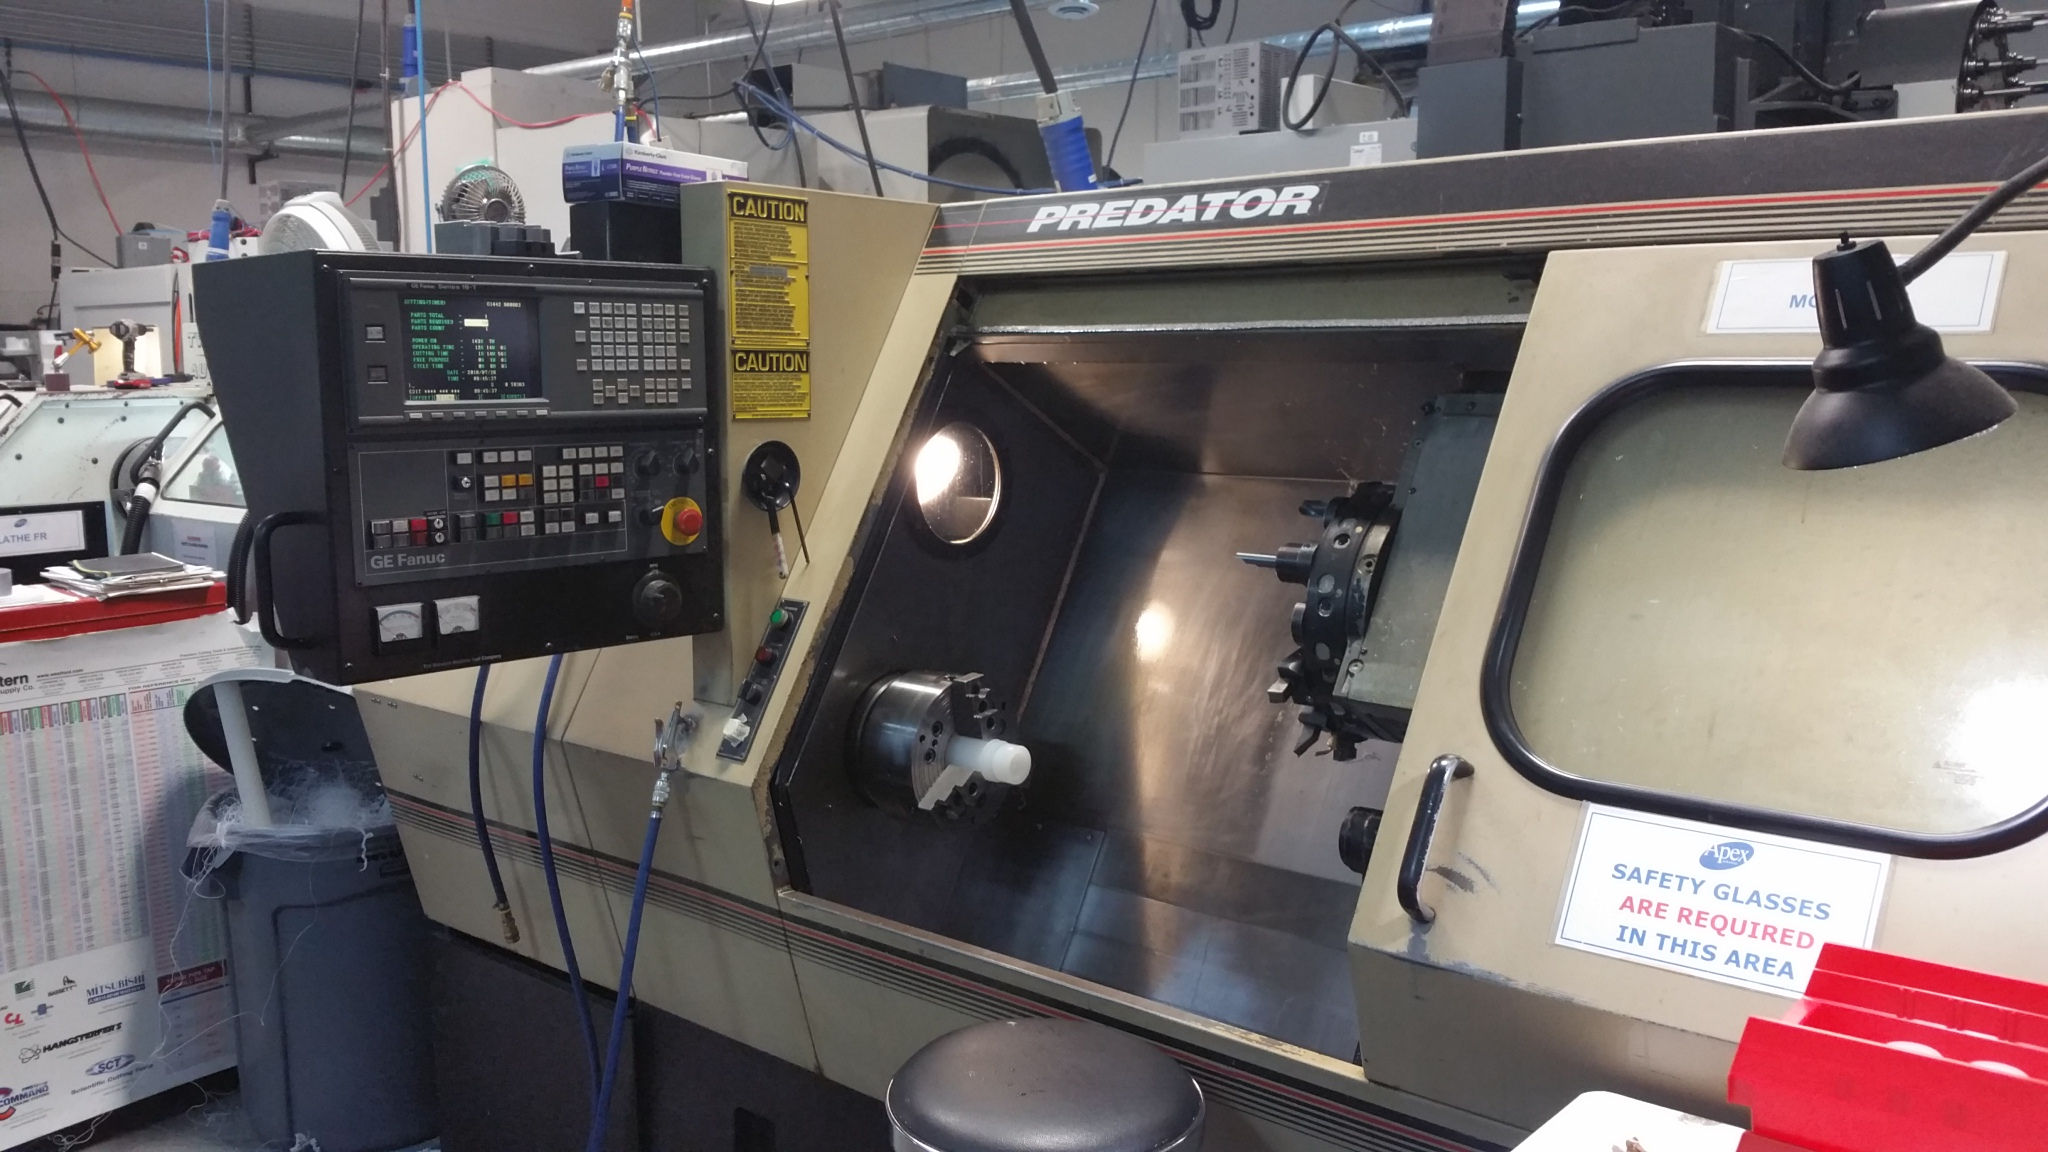 Monarch Predator Cnc Lathe Tigard Or Sold 2018 Md